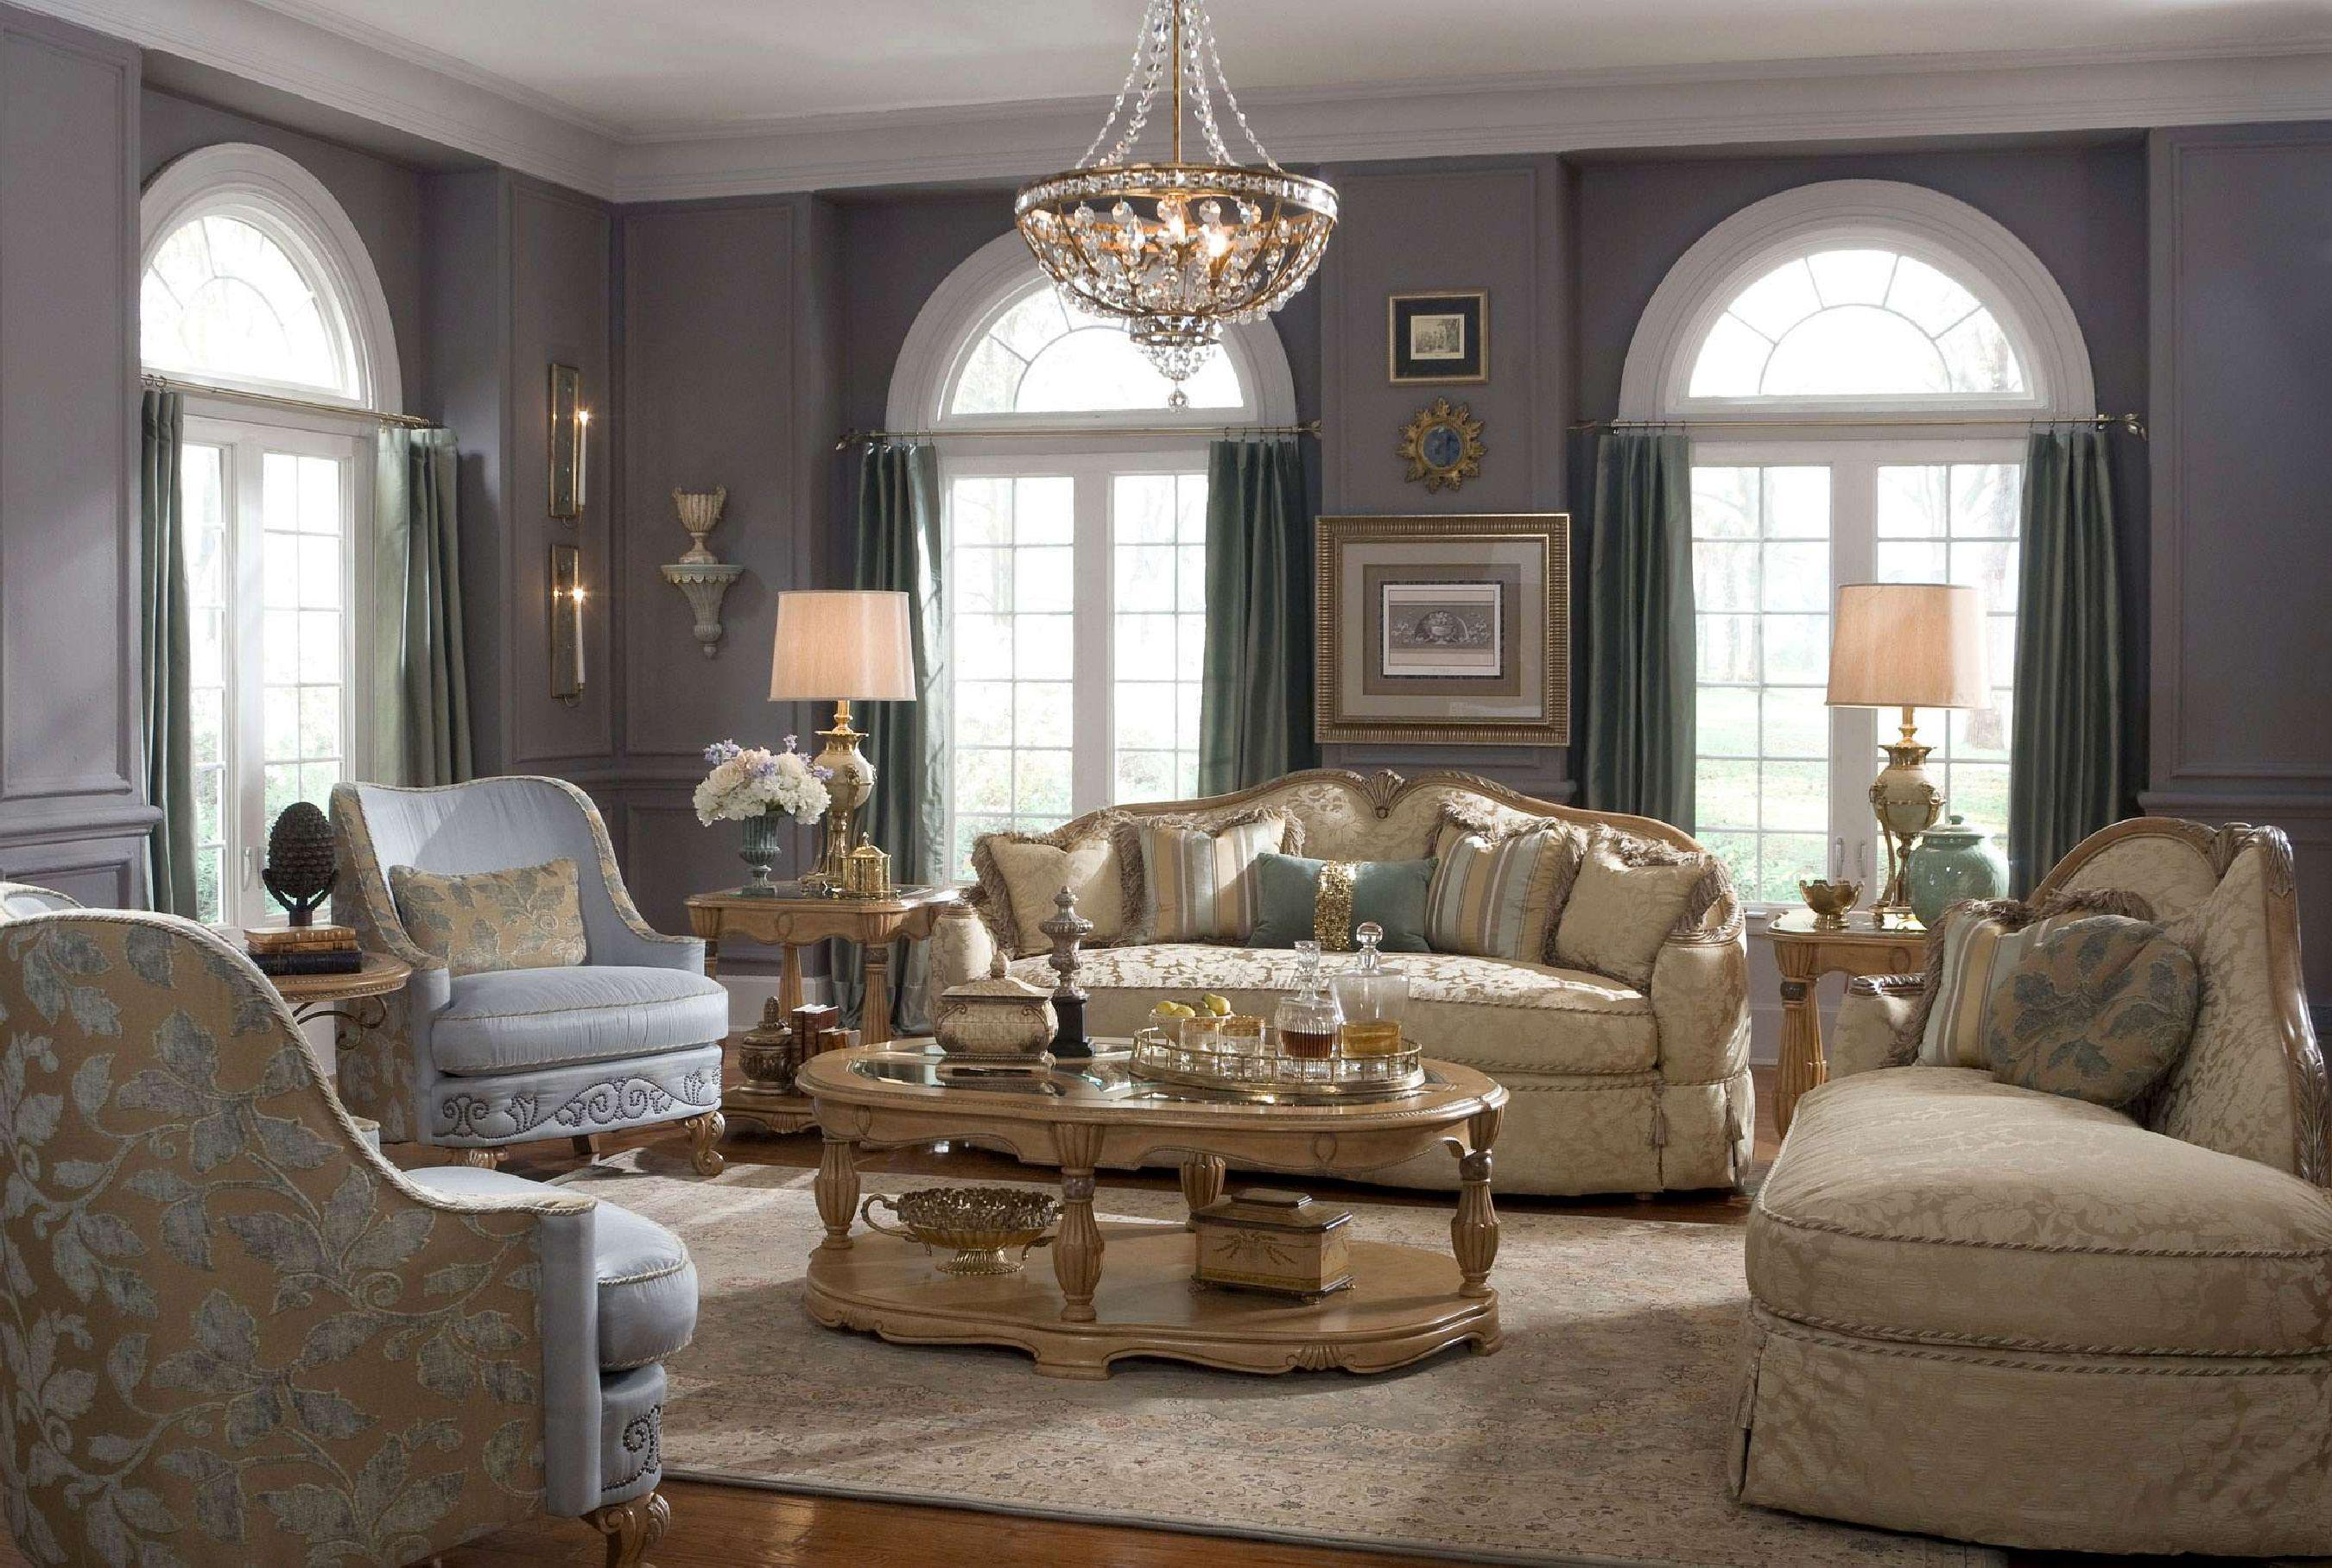 3 Benefits Of Decorating Your Home With Antiques